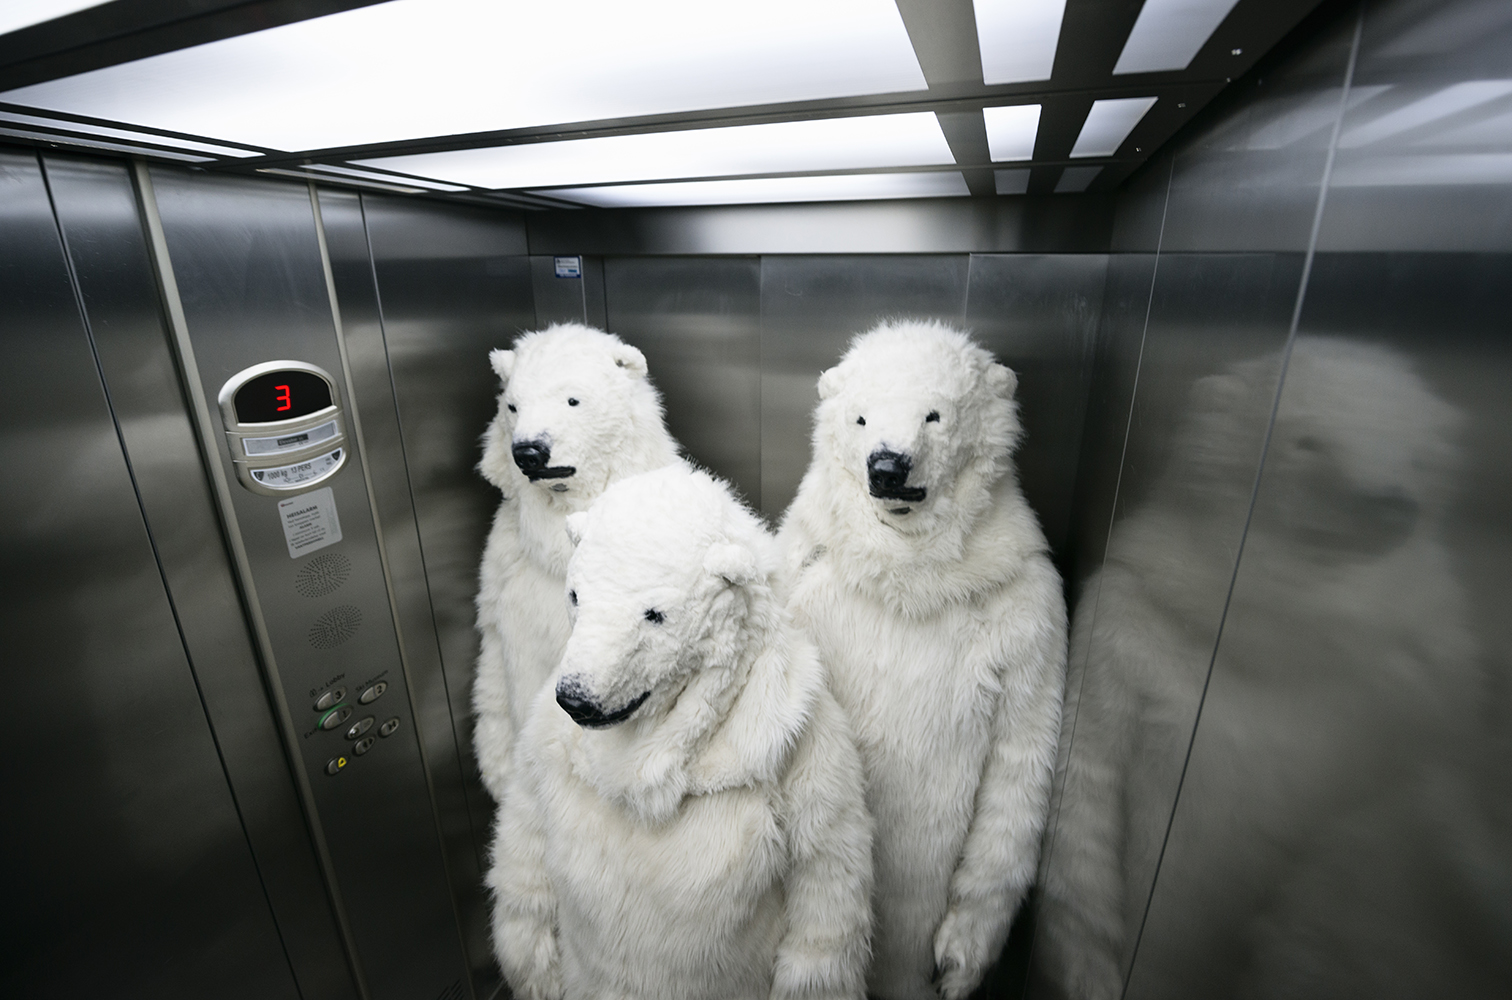 130214 Oslo, NorwayPolar bear activists in an elevator during Oslo Energy Forum with demands to the oil industry  to stay out of the Arctic.